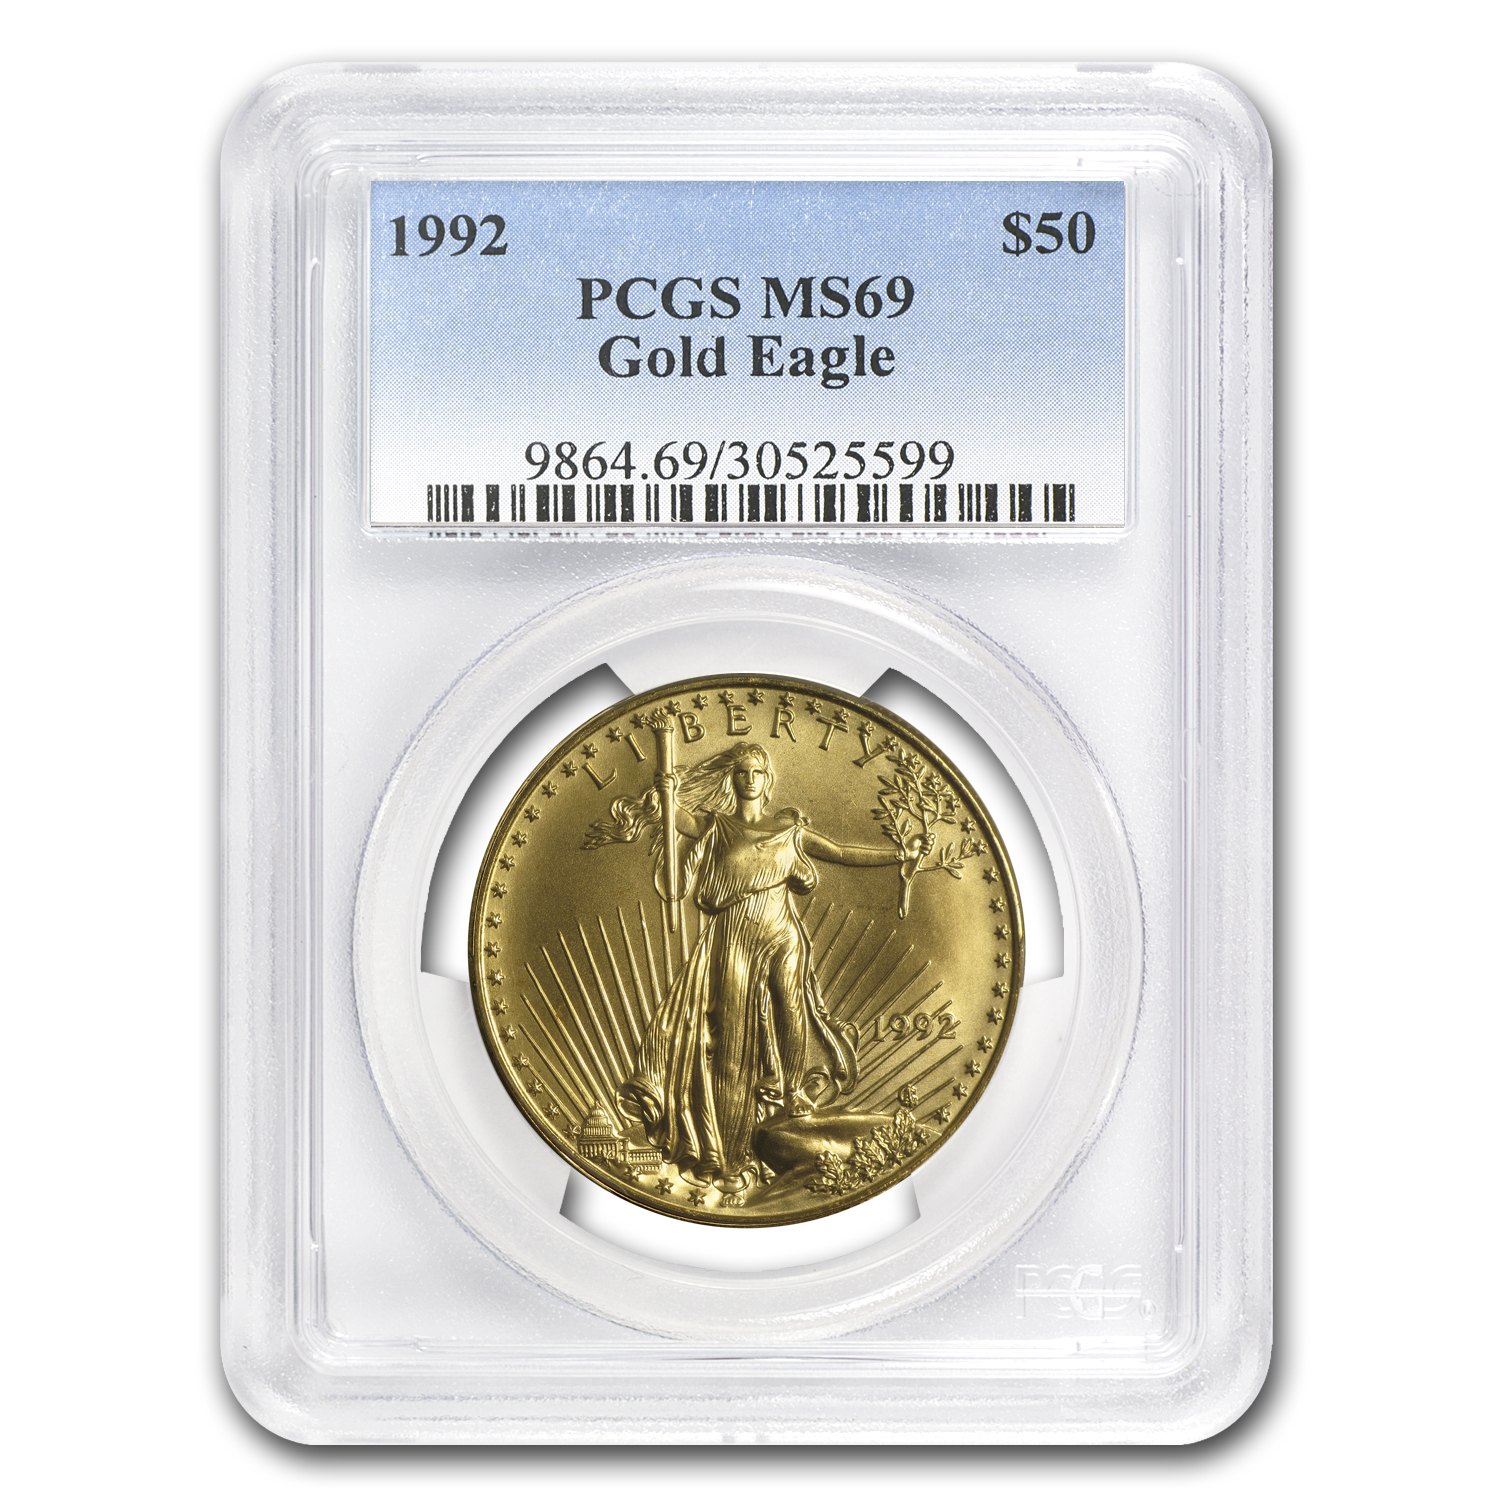 1992 1 oz Gold American Eagle MS-69 PCGS